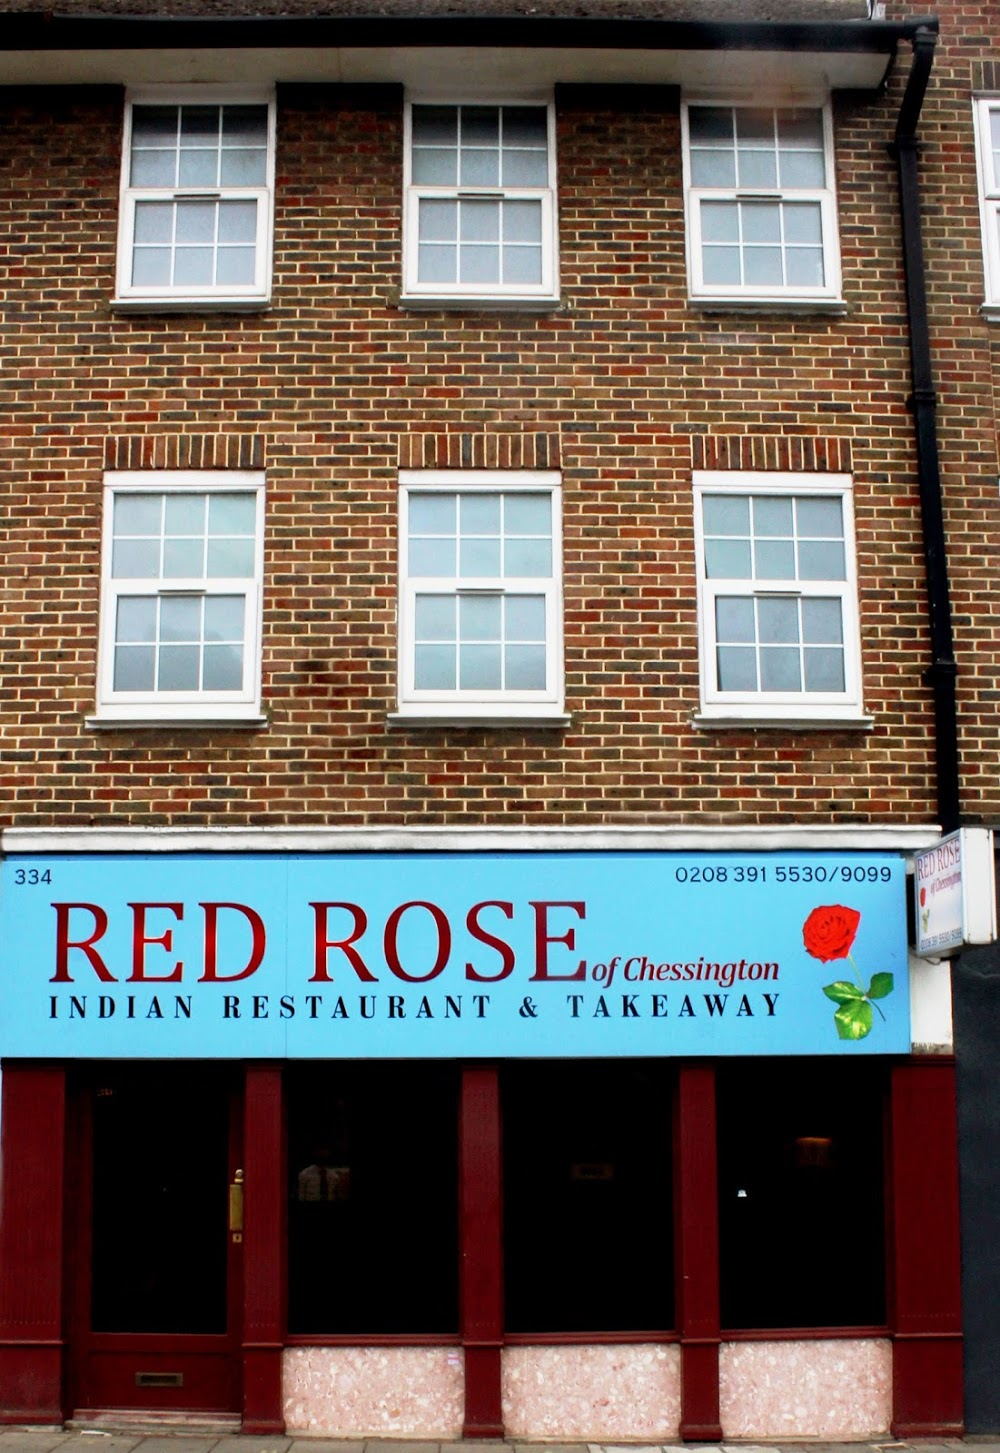 Red Rose of Chessington